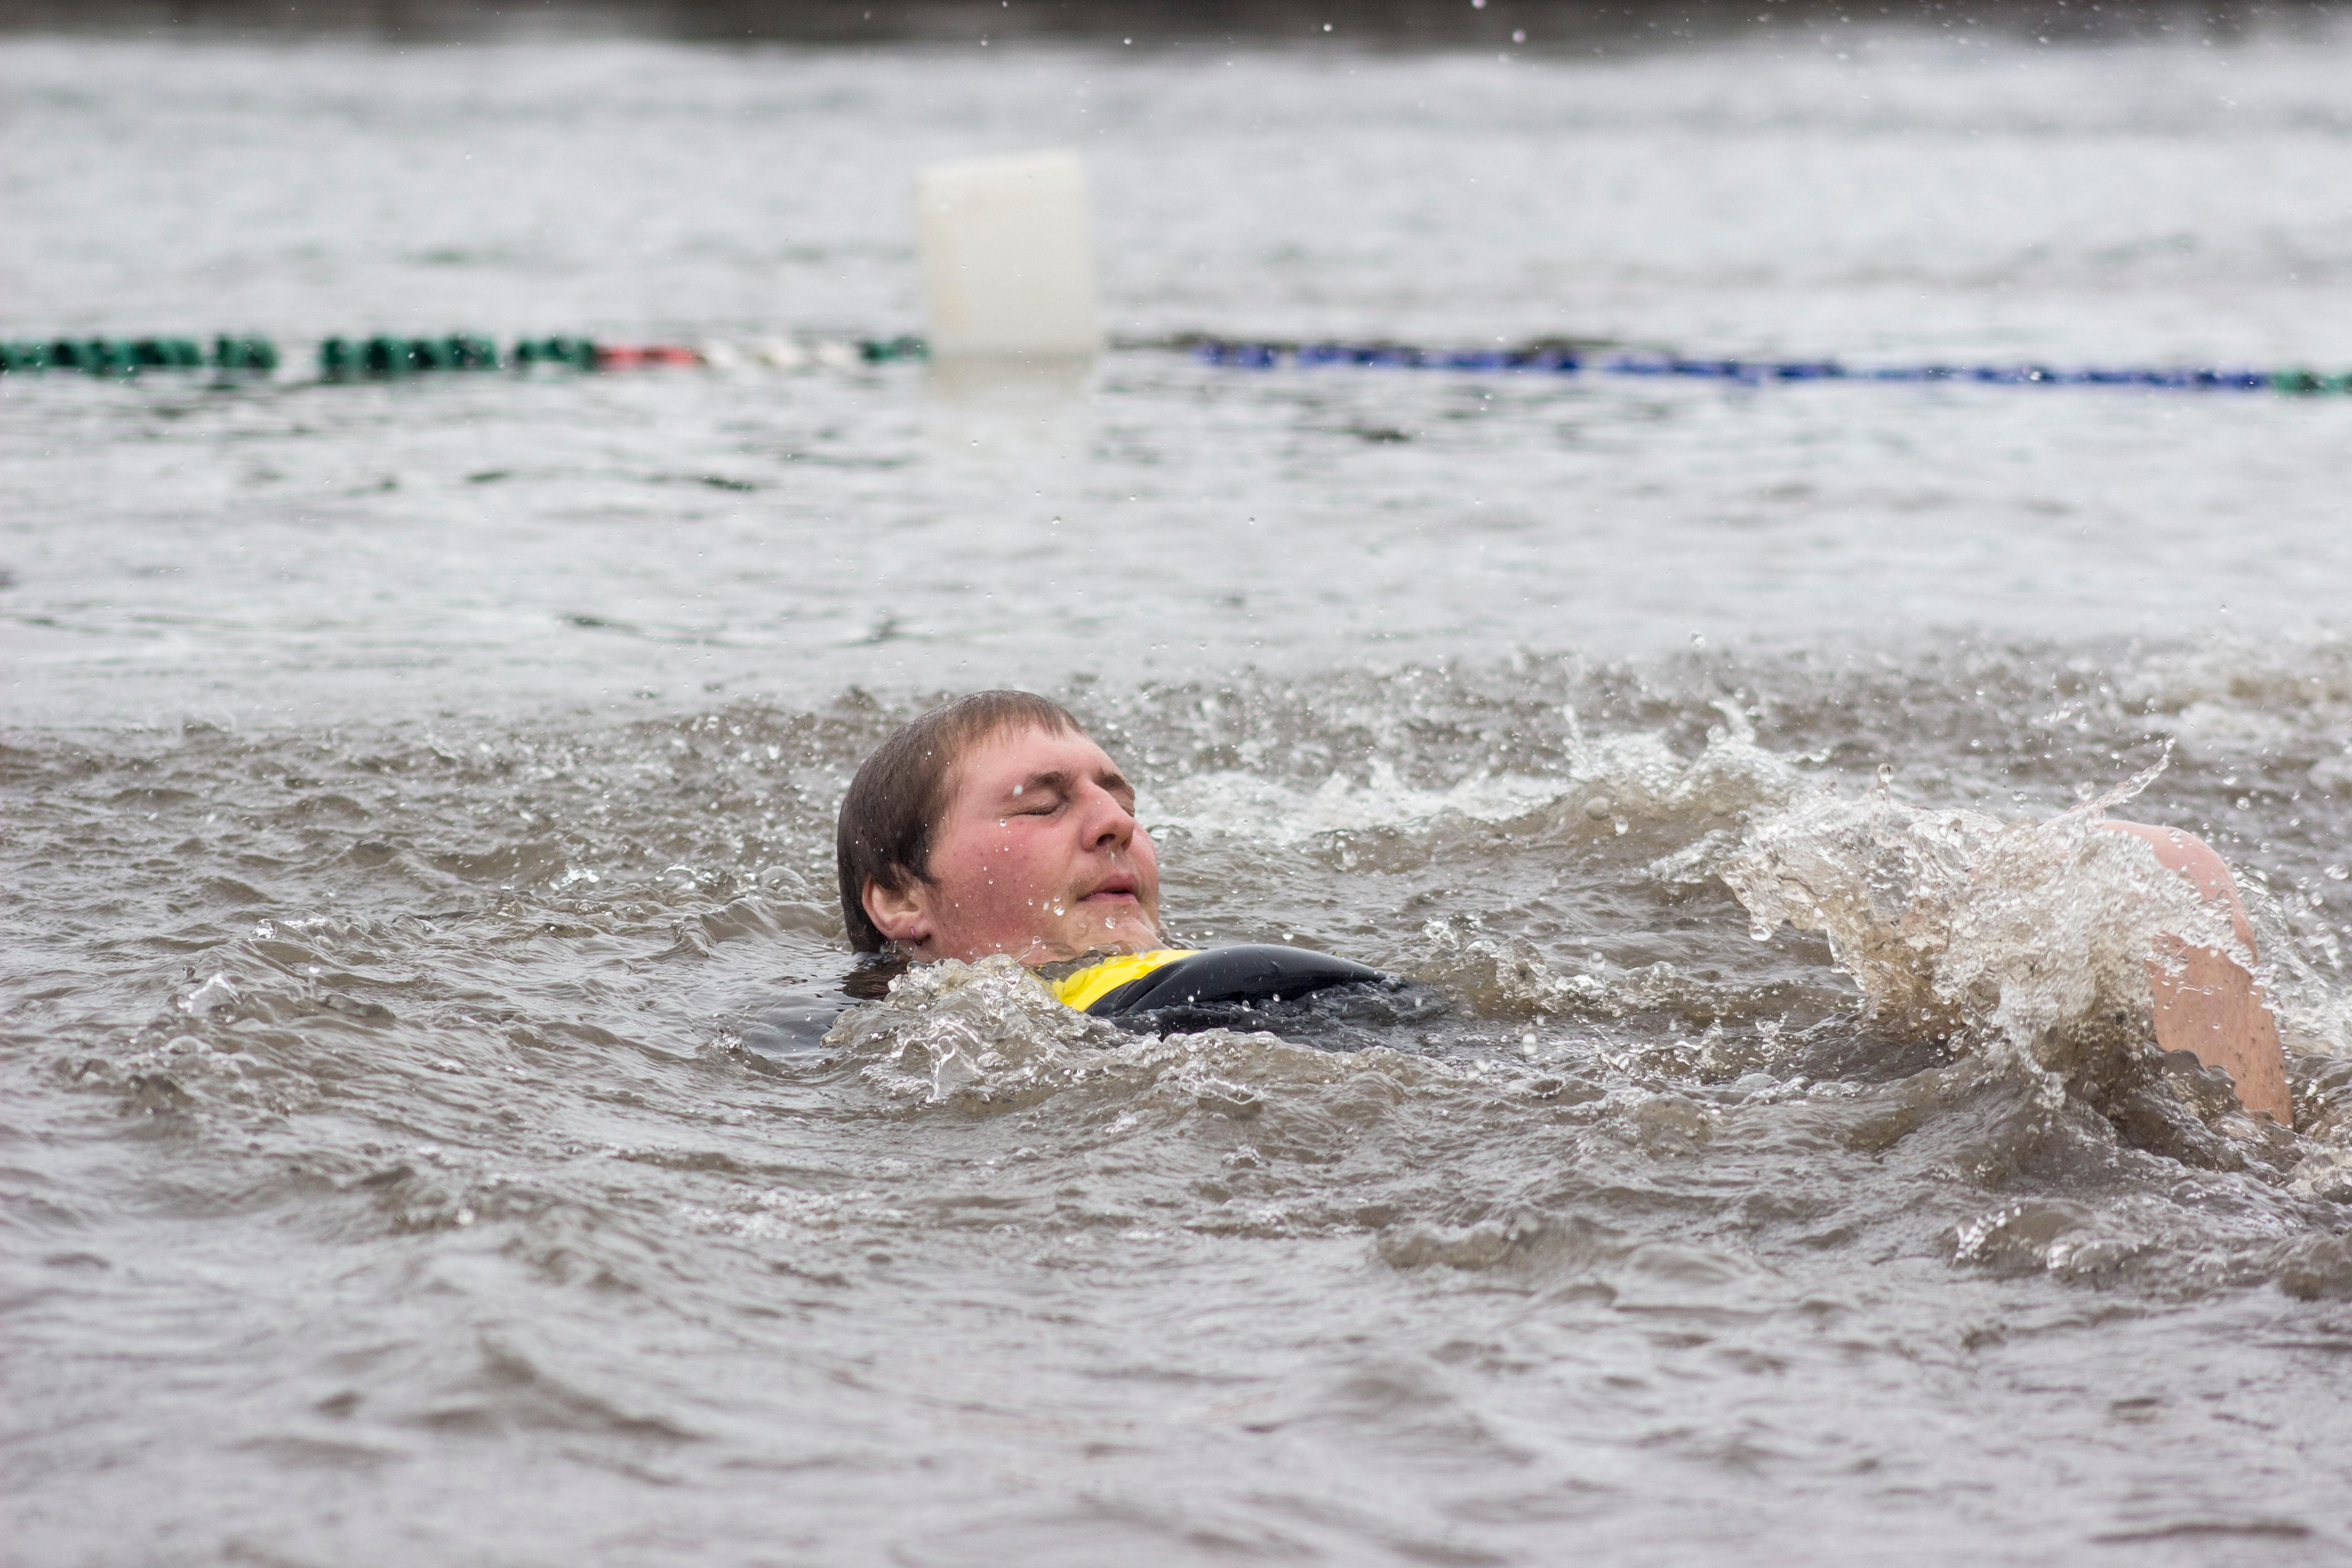 Hundreds of eager participants met at Maurie Jacobs Park in Eugene on Saturday, Feb. 13 to take the Polar Plunge into the Willamette River. The event benefitted Special Olympics Oregon. Photo by Amanda Butt